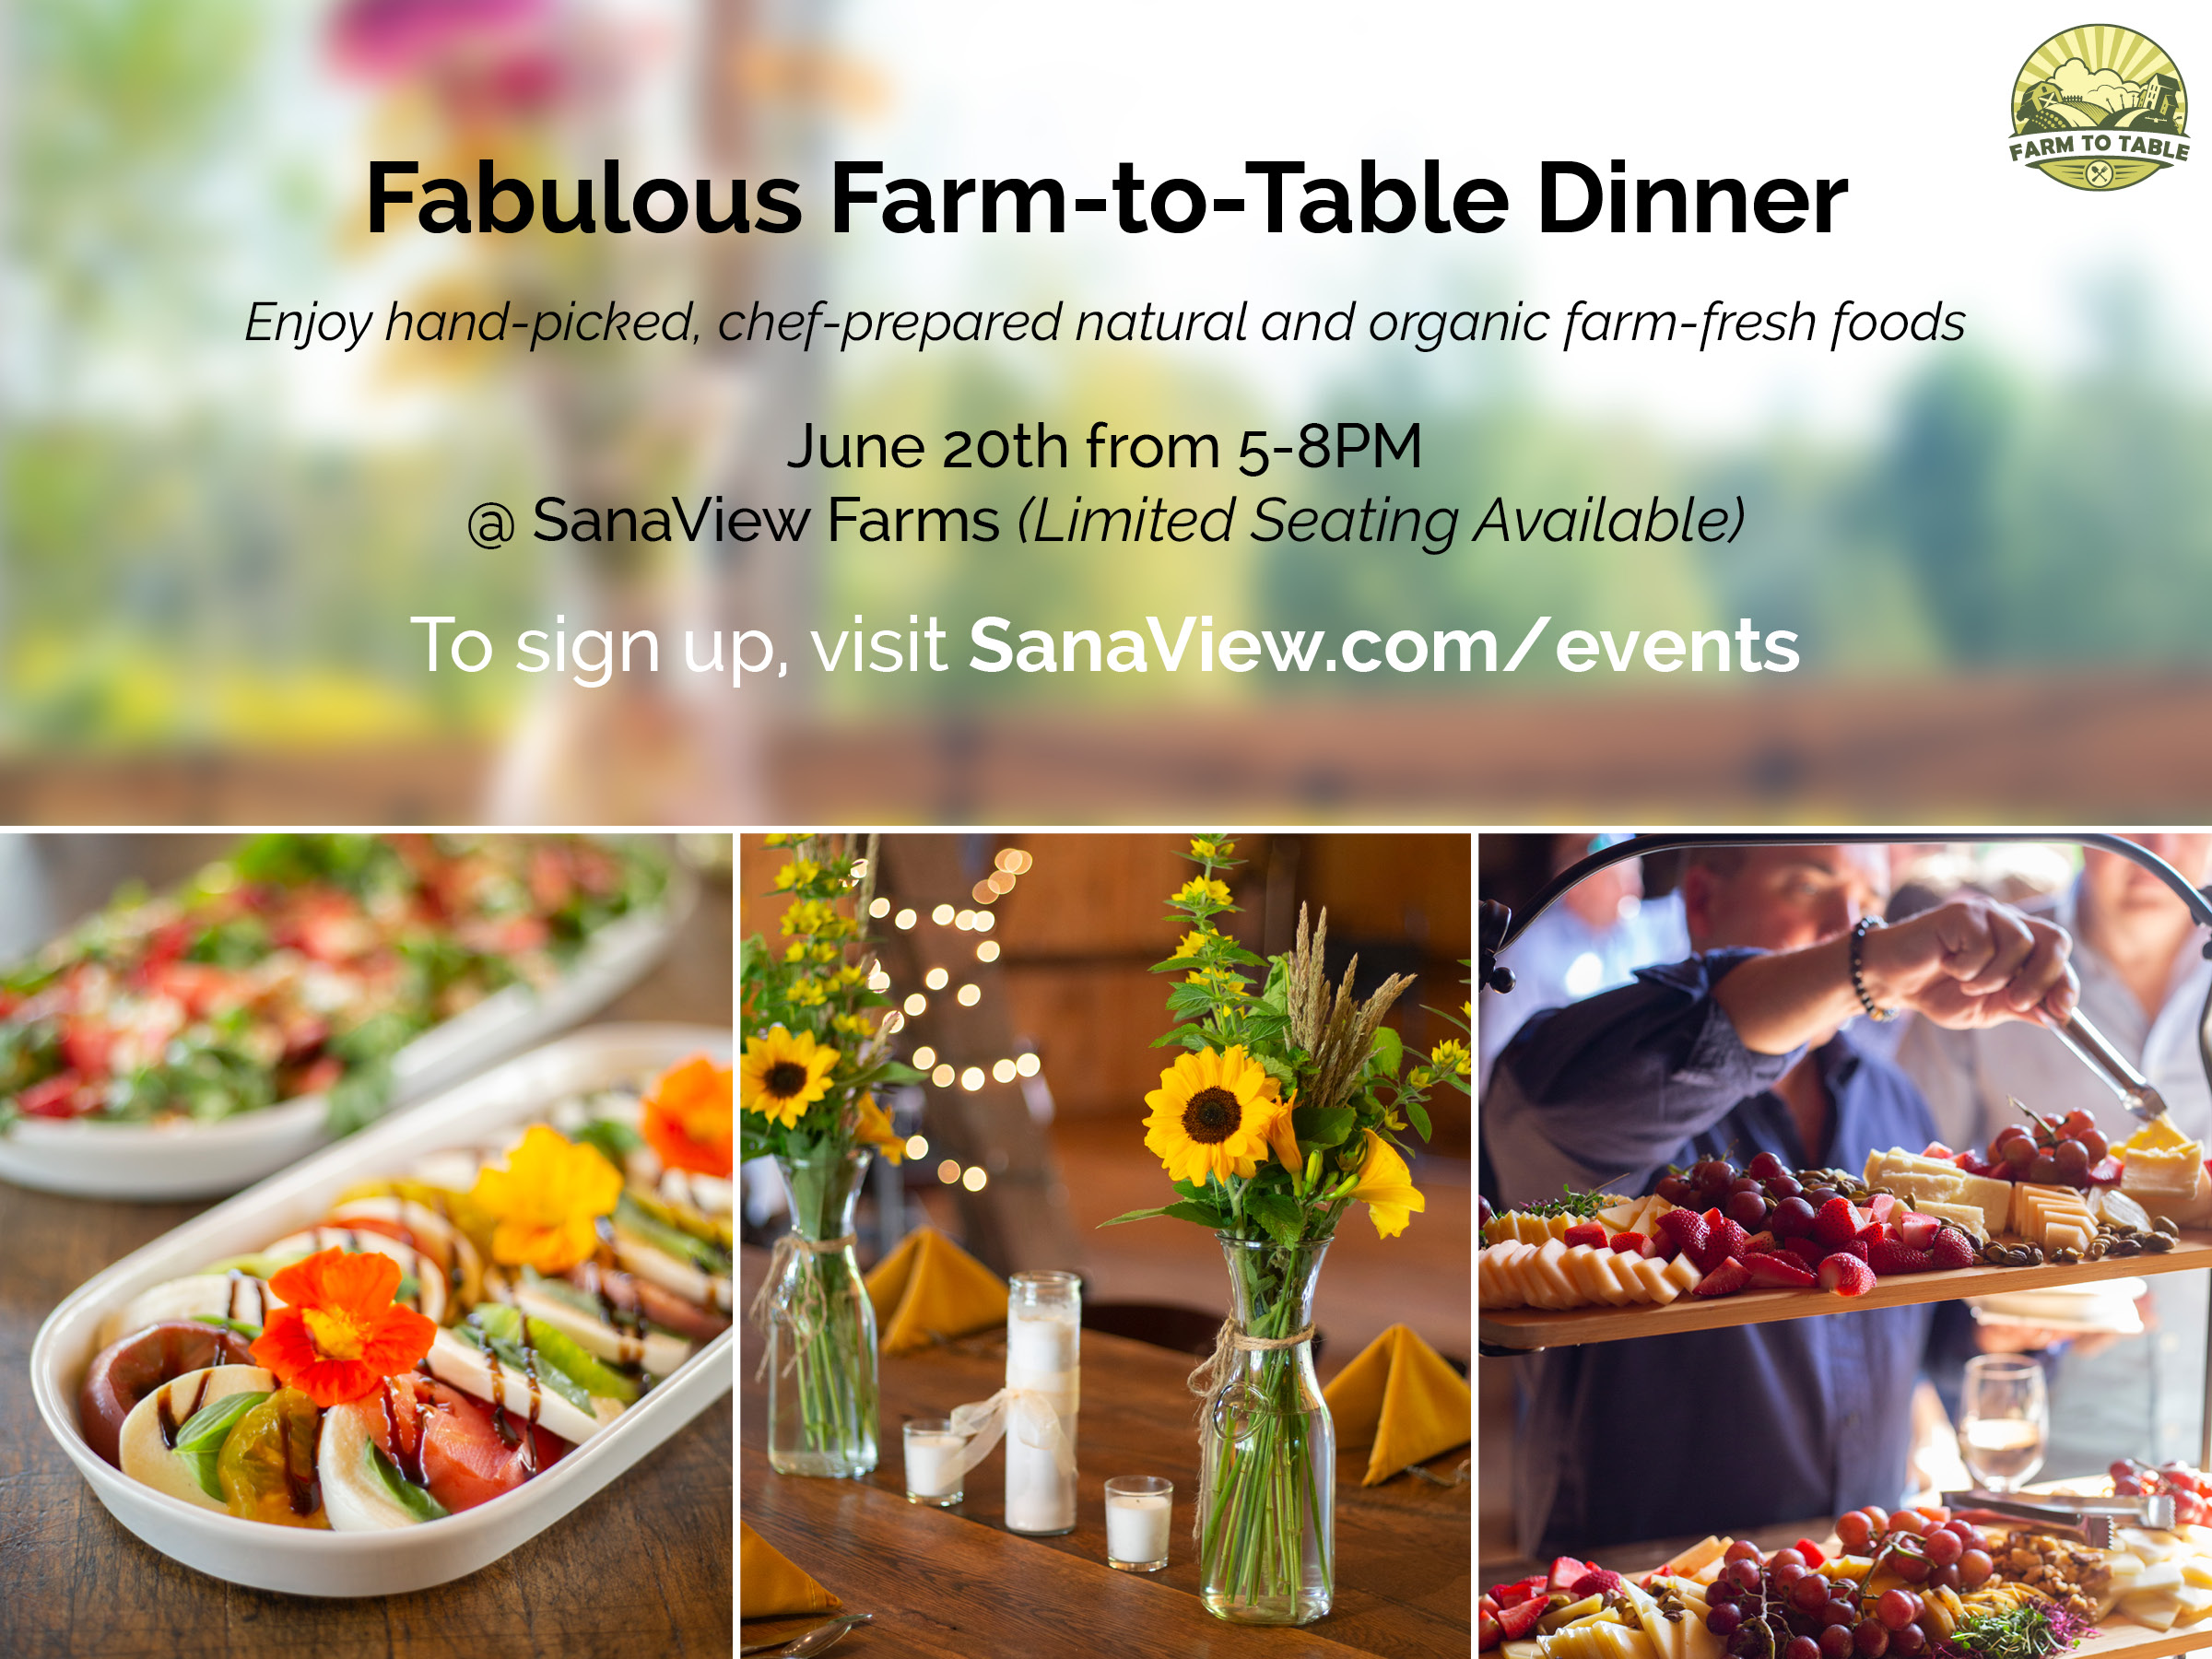 SanaView Farms Fabulous Farm-to-Table Dinner